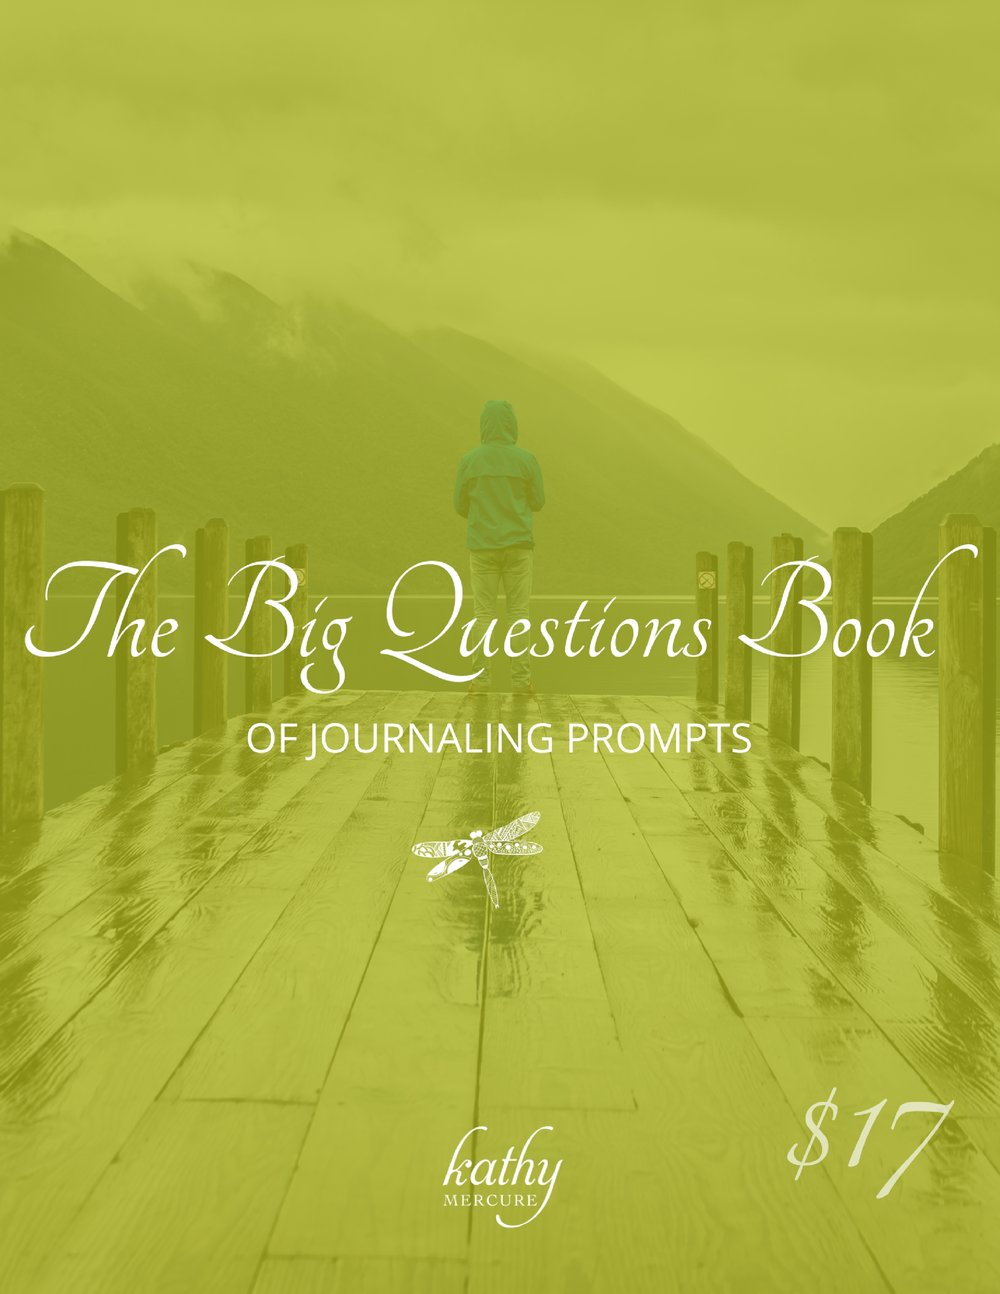 Preview The Big Questions Book